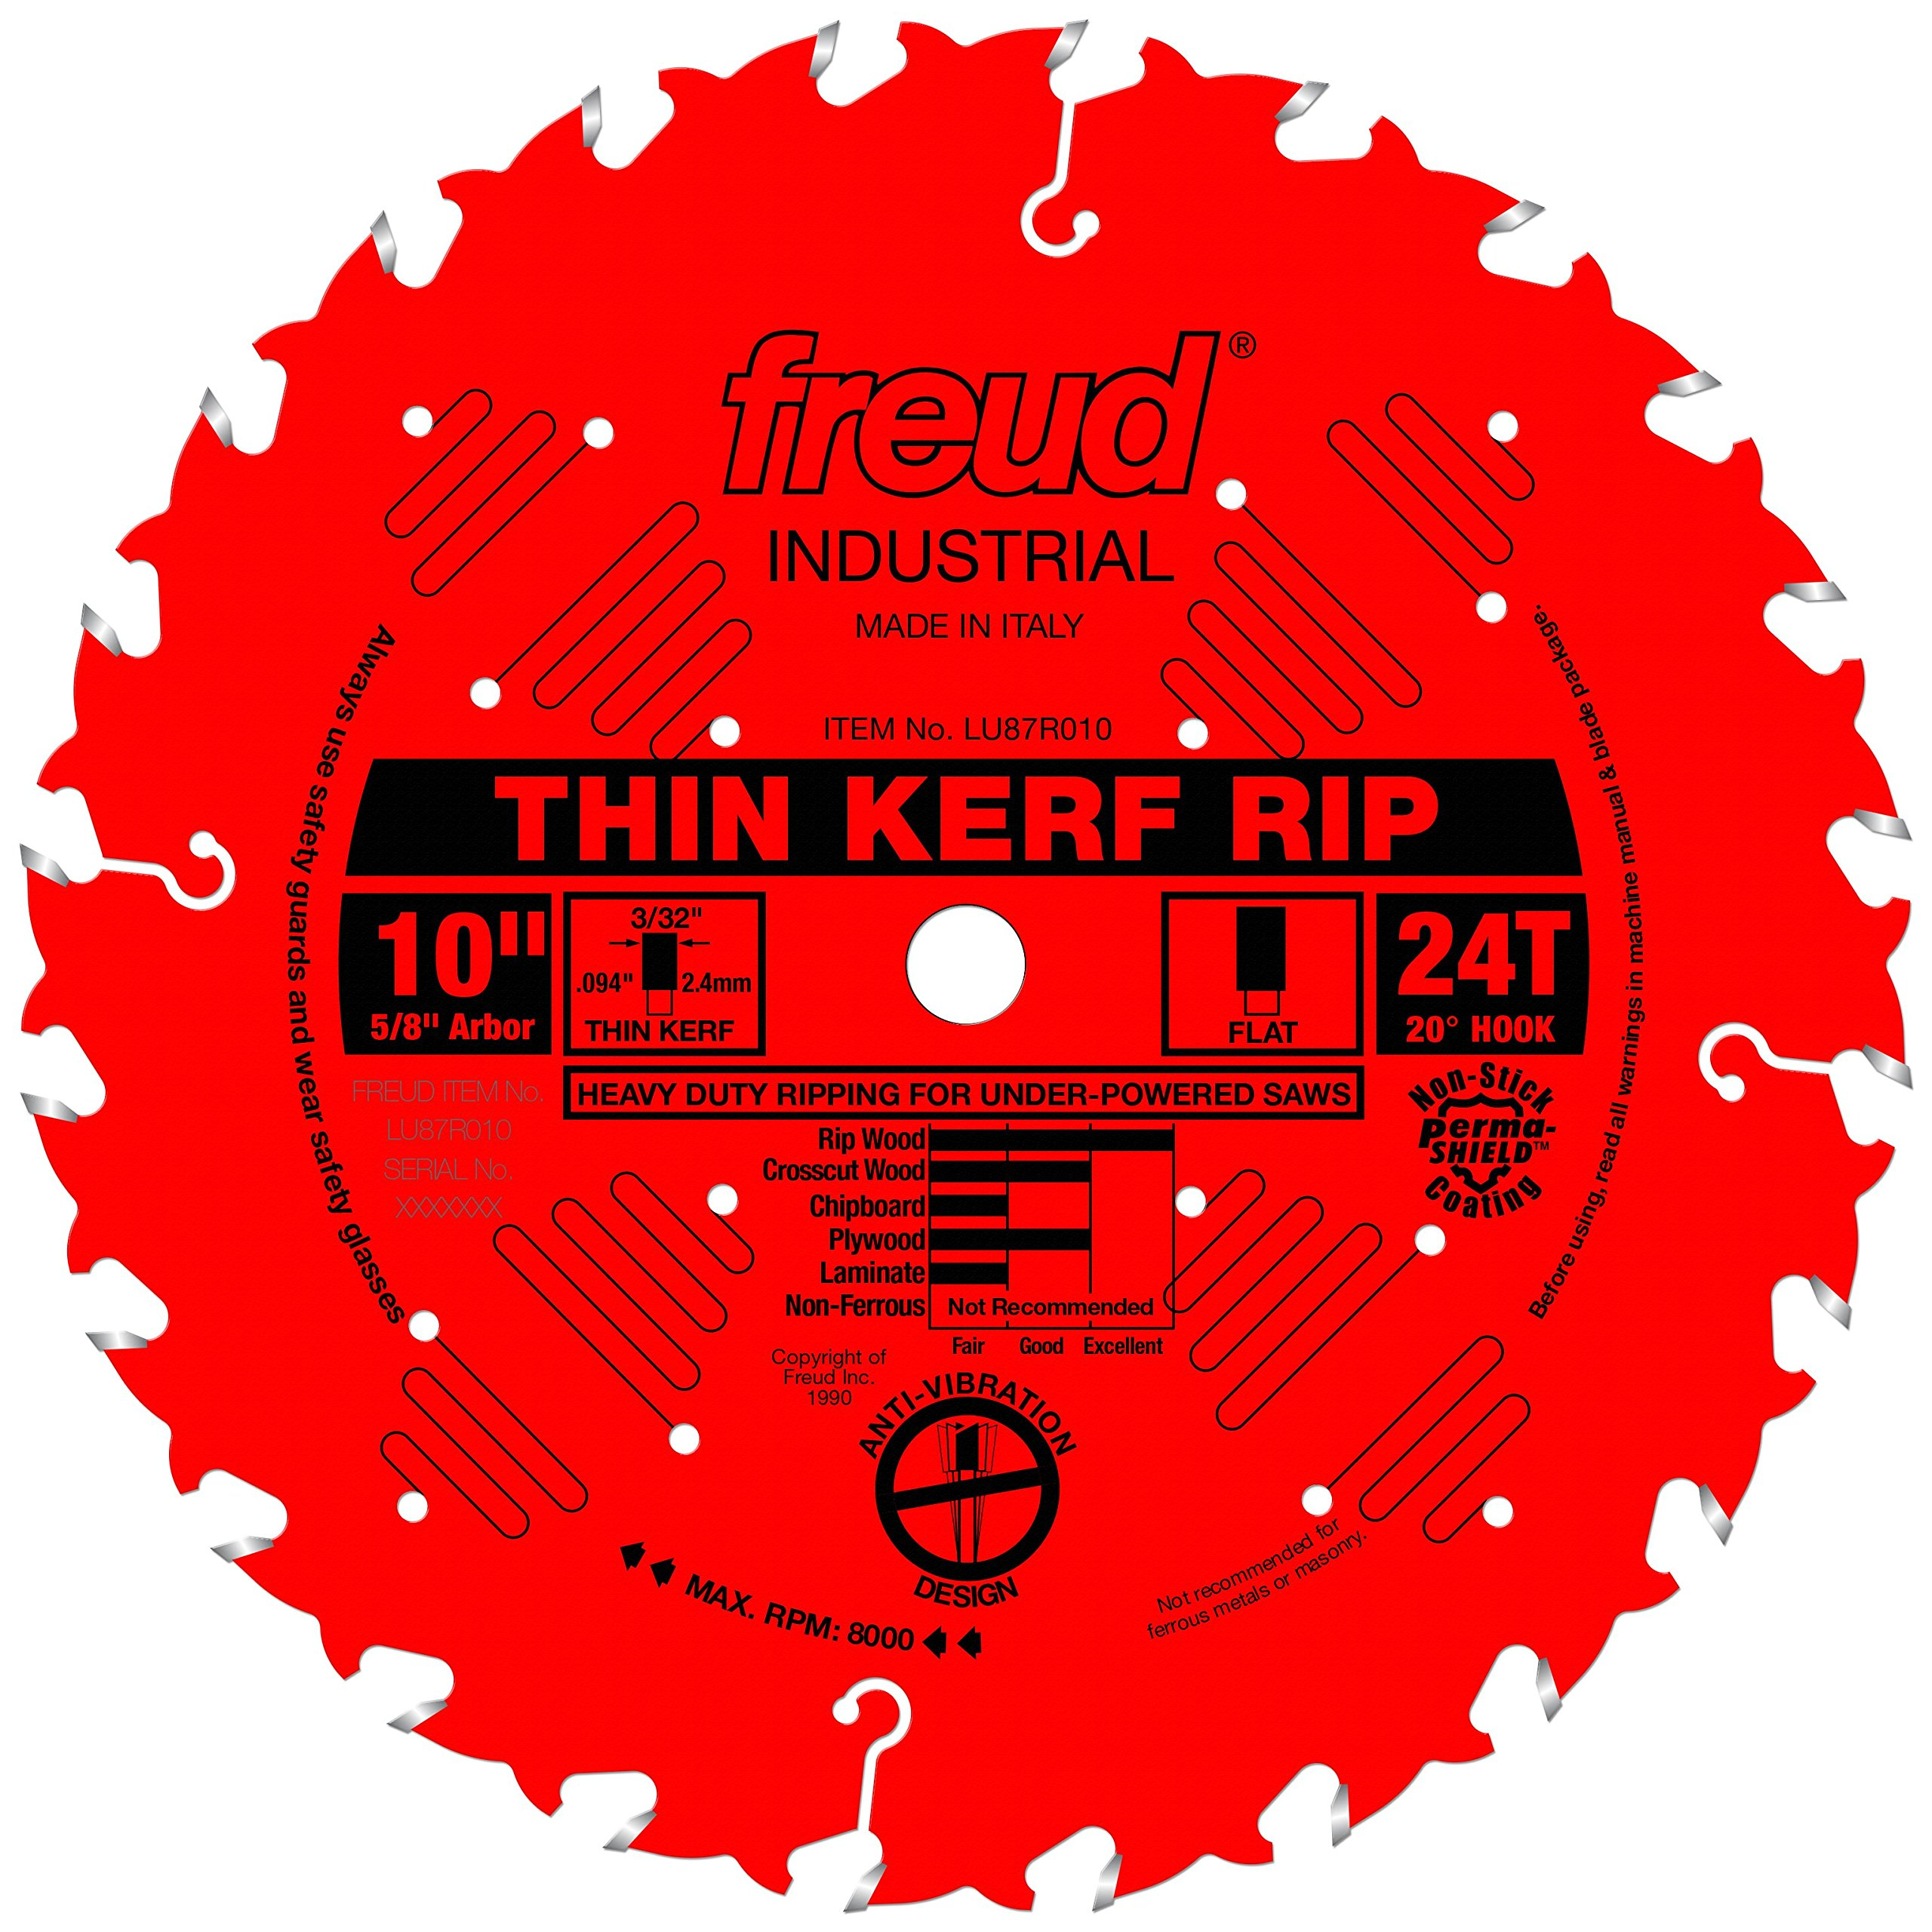 Freud 10'' x 24T Thin Kerf Rip Blade (LU87R010) by Freud